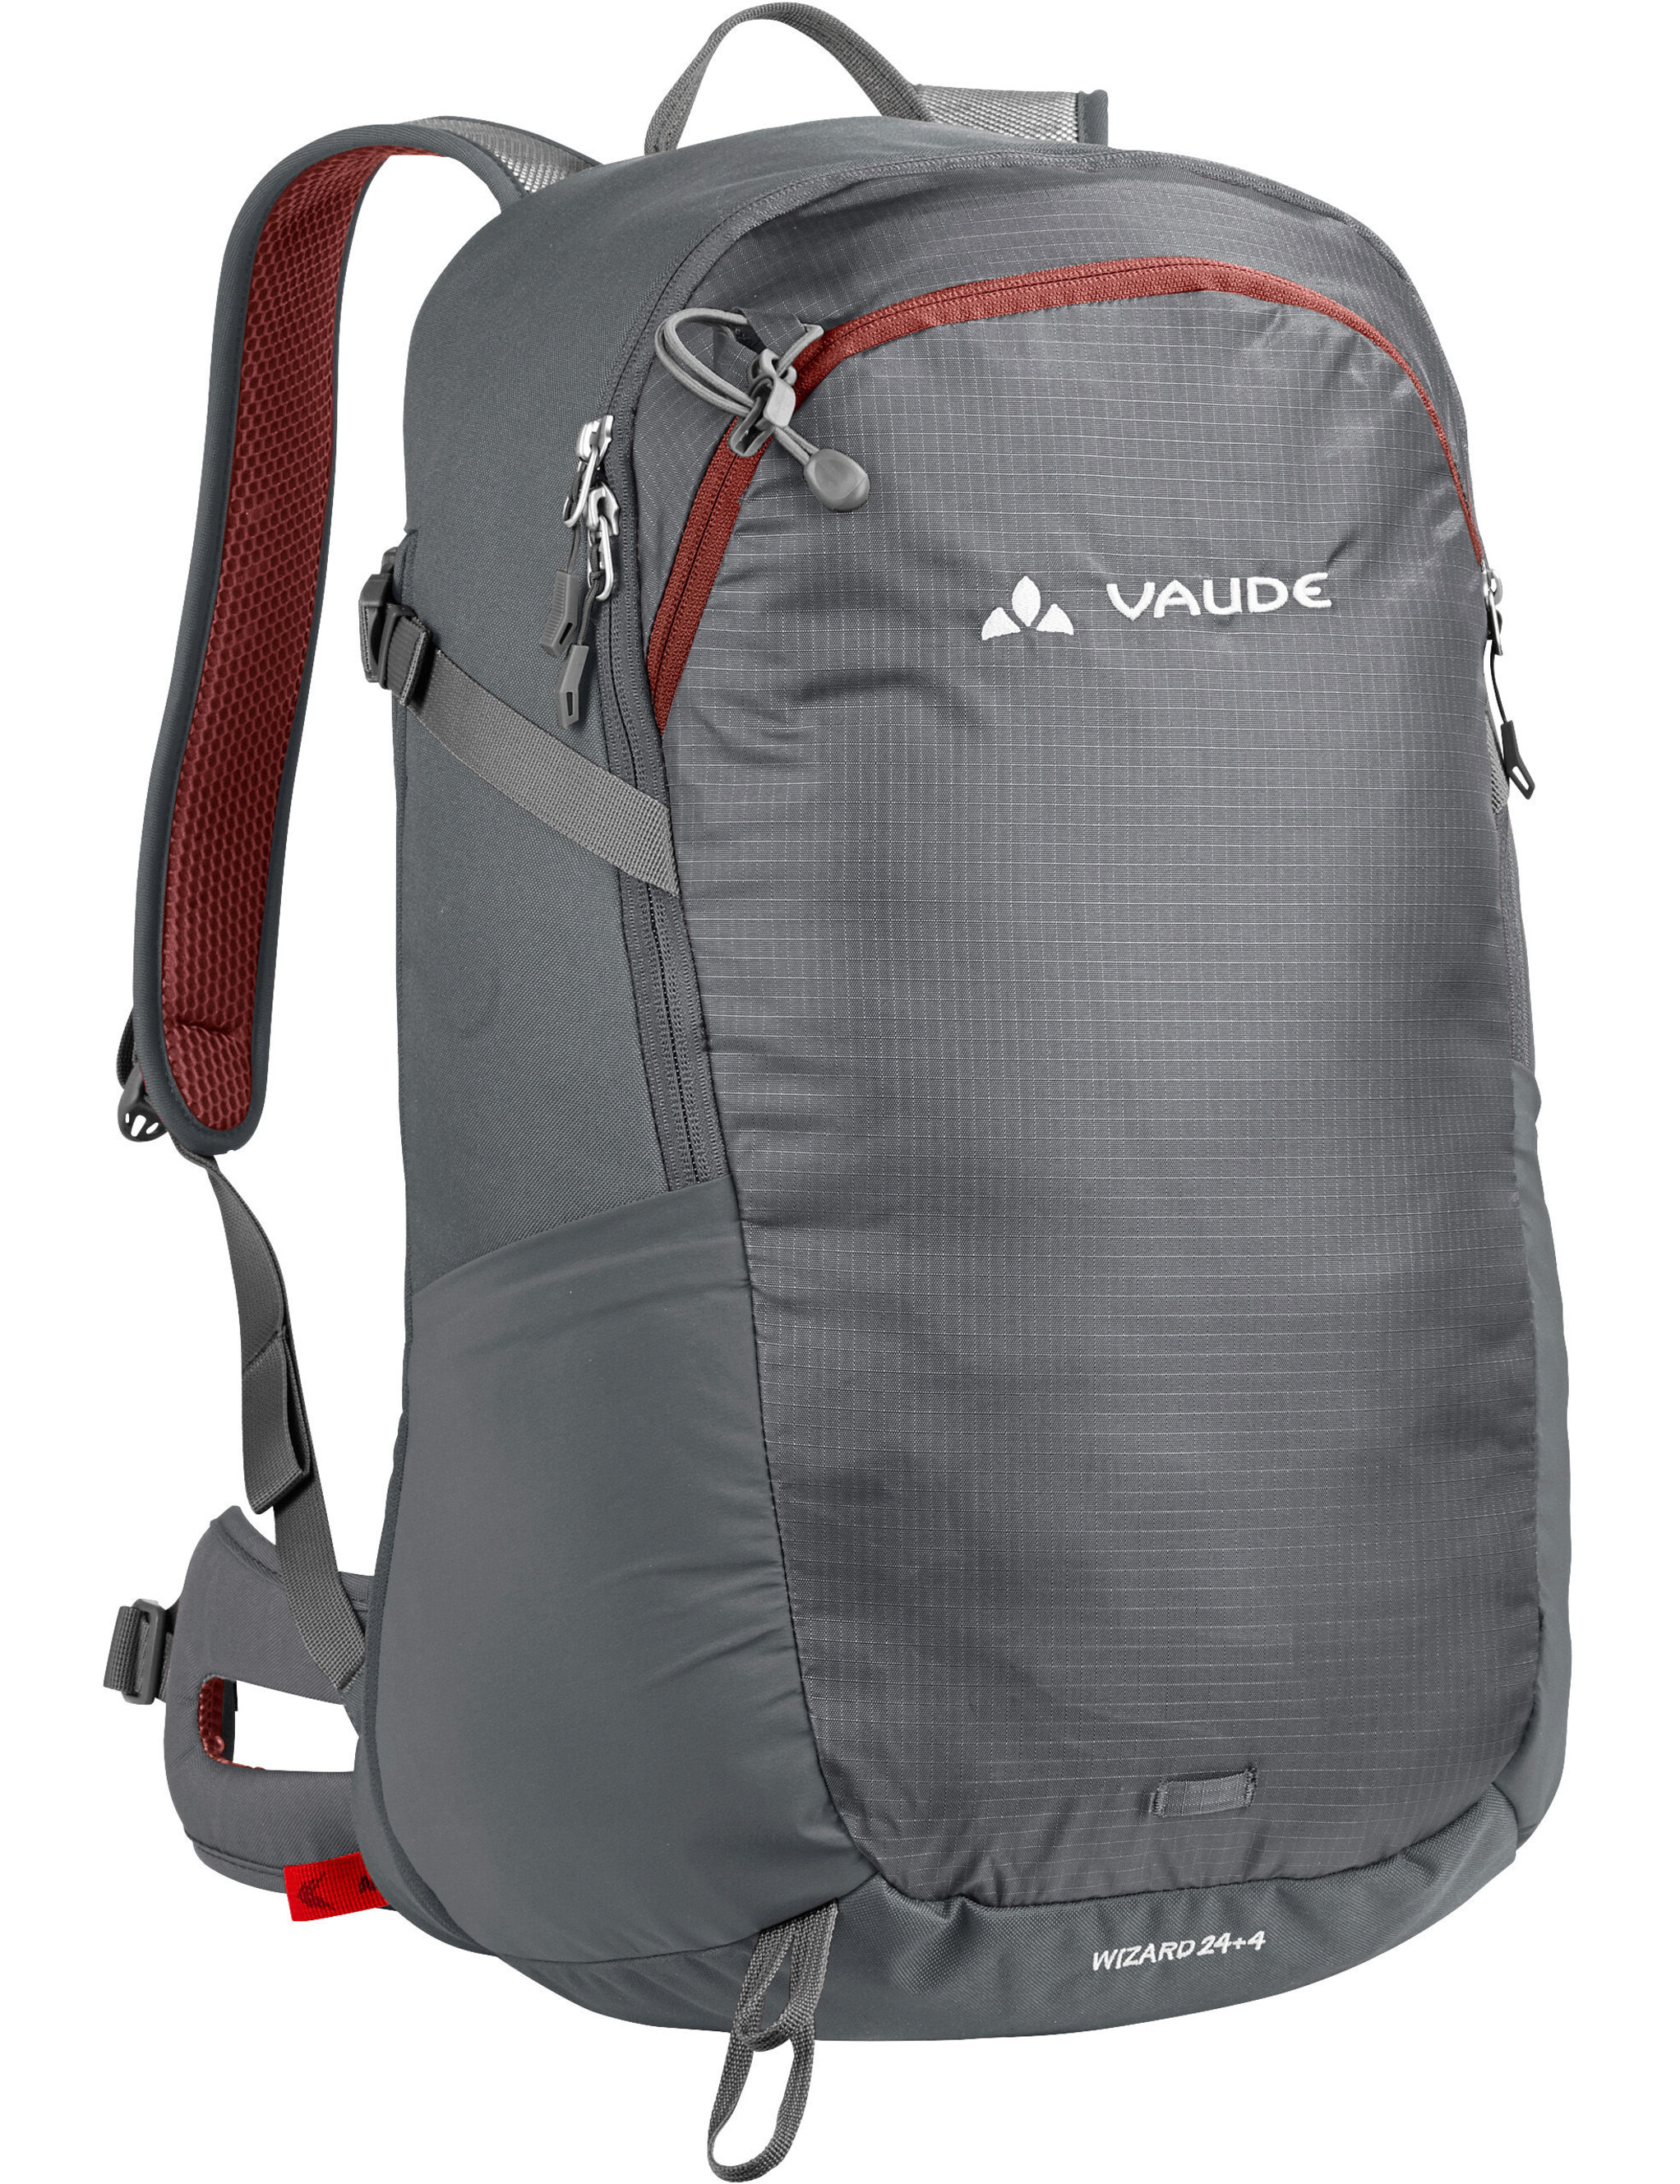 VAUDE Wizard 24+4 Backpack pebbles - addnature.com c3d43096f04c8